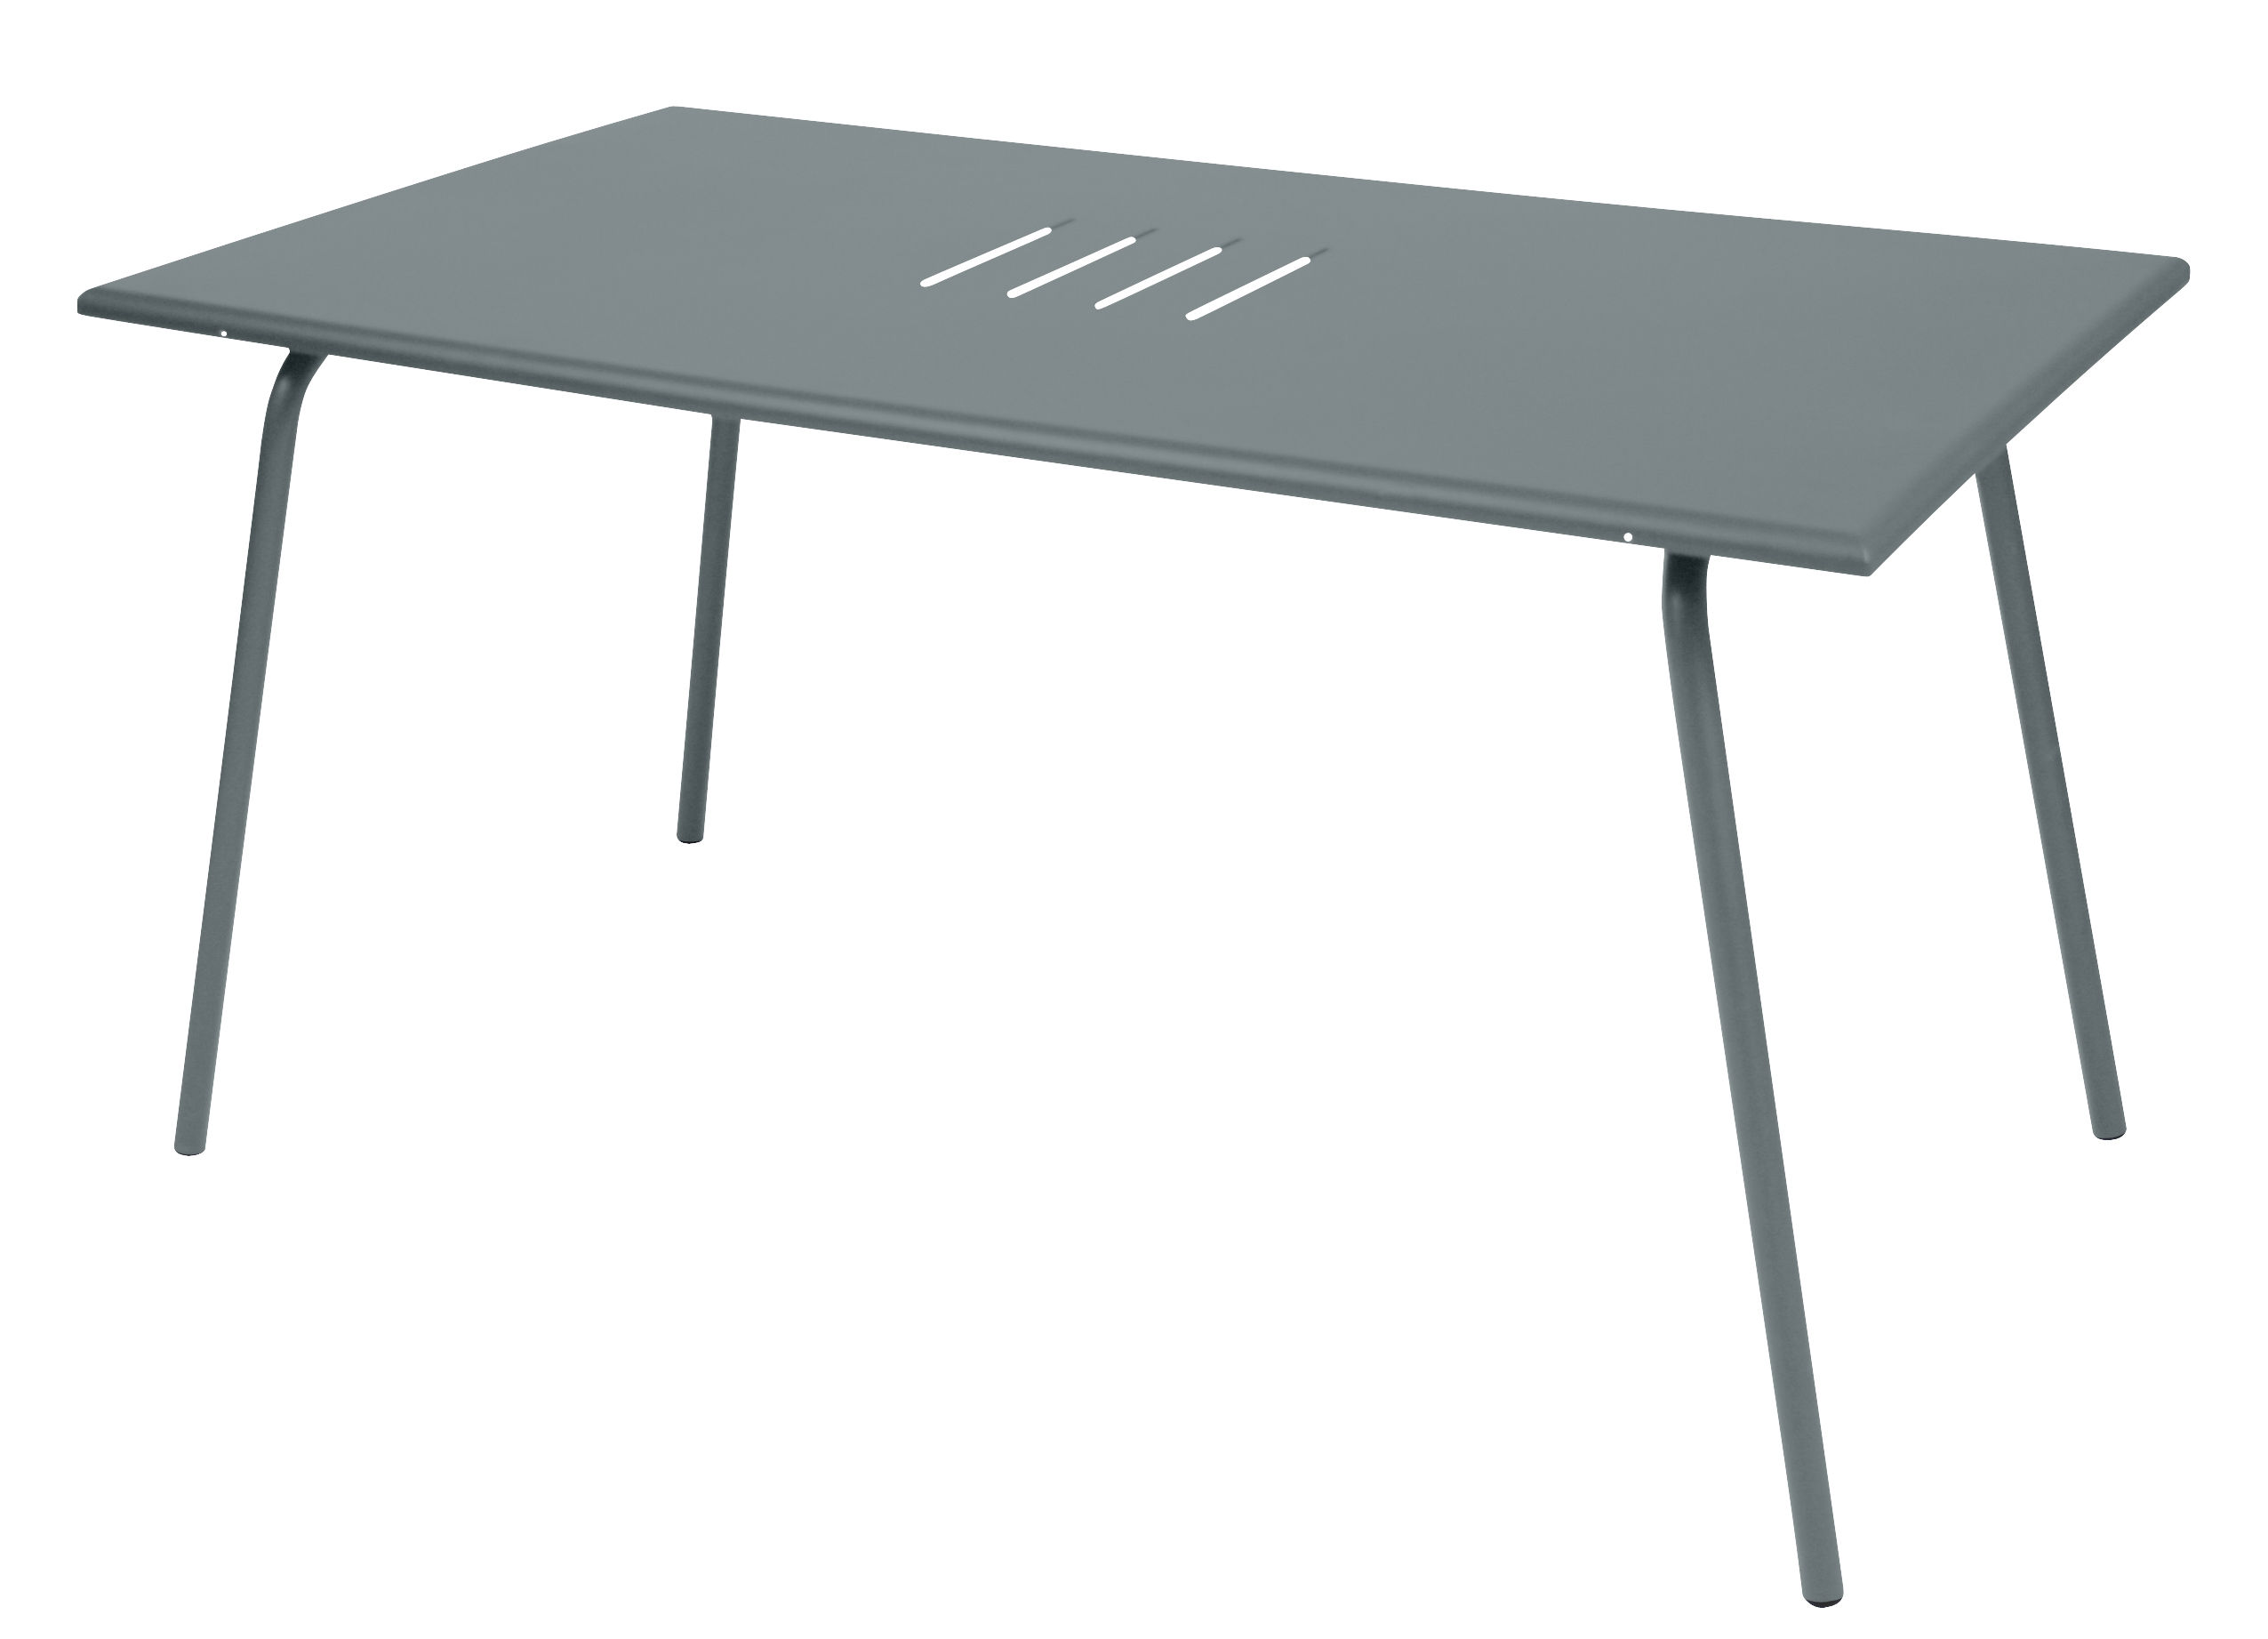 Gartenmöbel Fermob Monceau Rectangular Table 146 X 80 Cm 6 People By Fermob